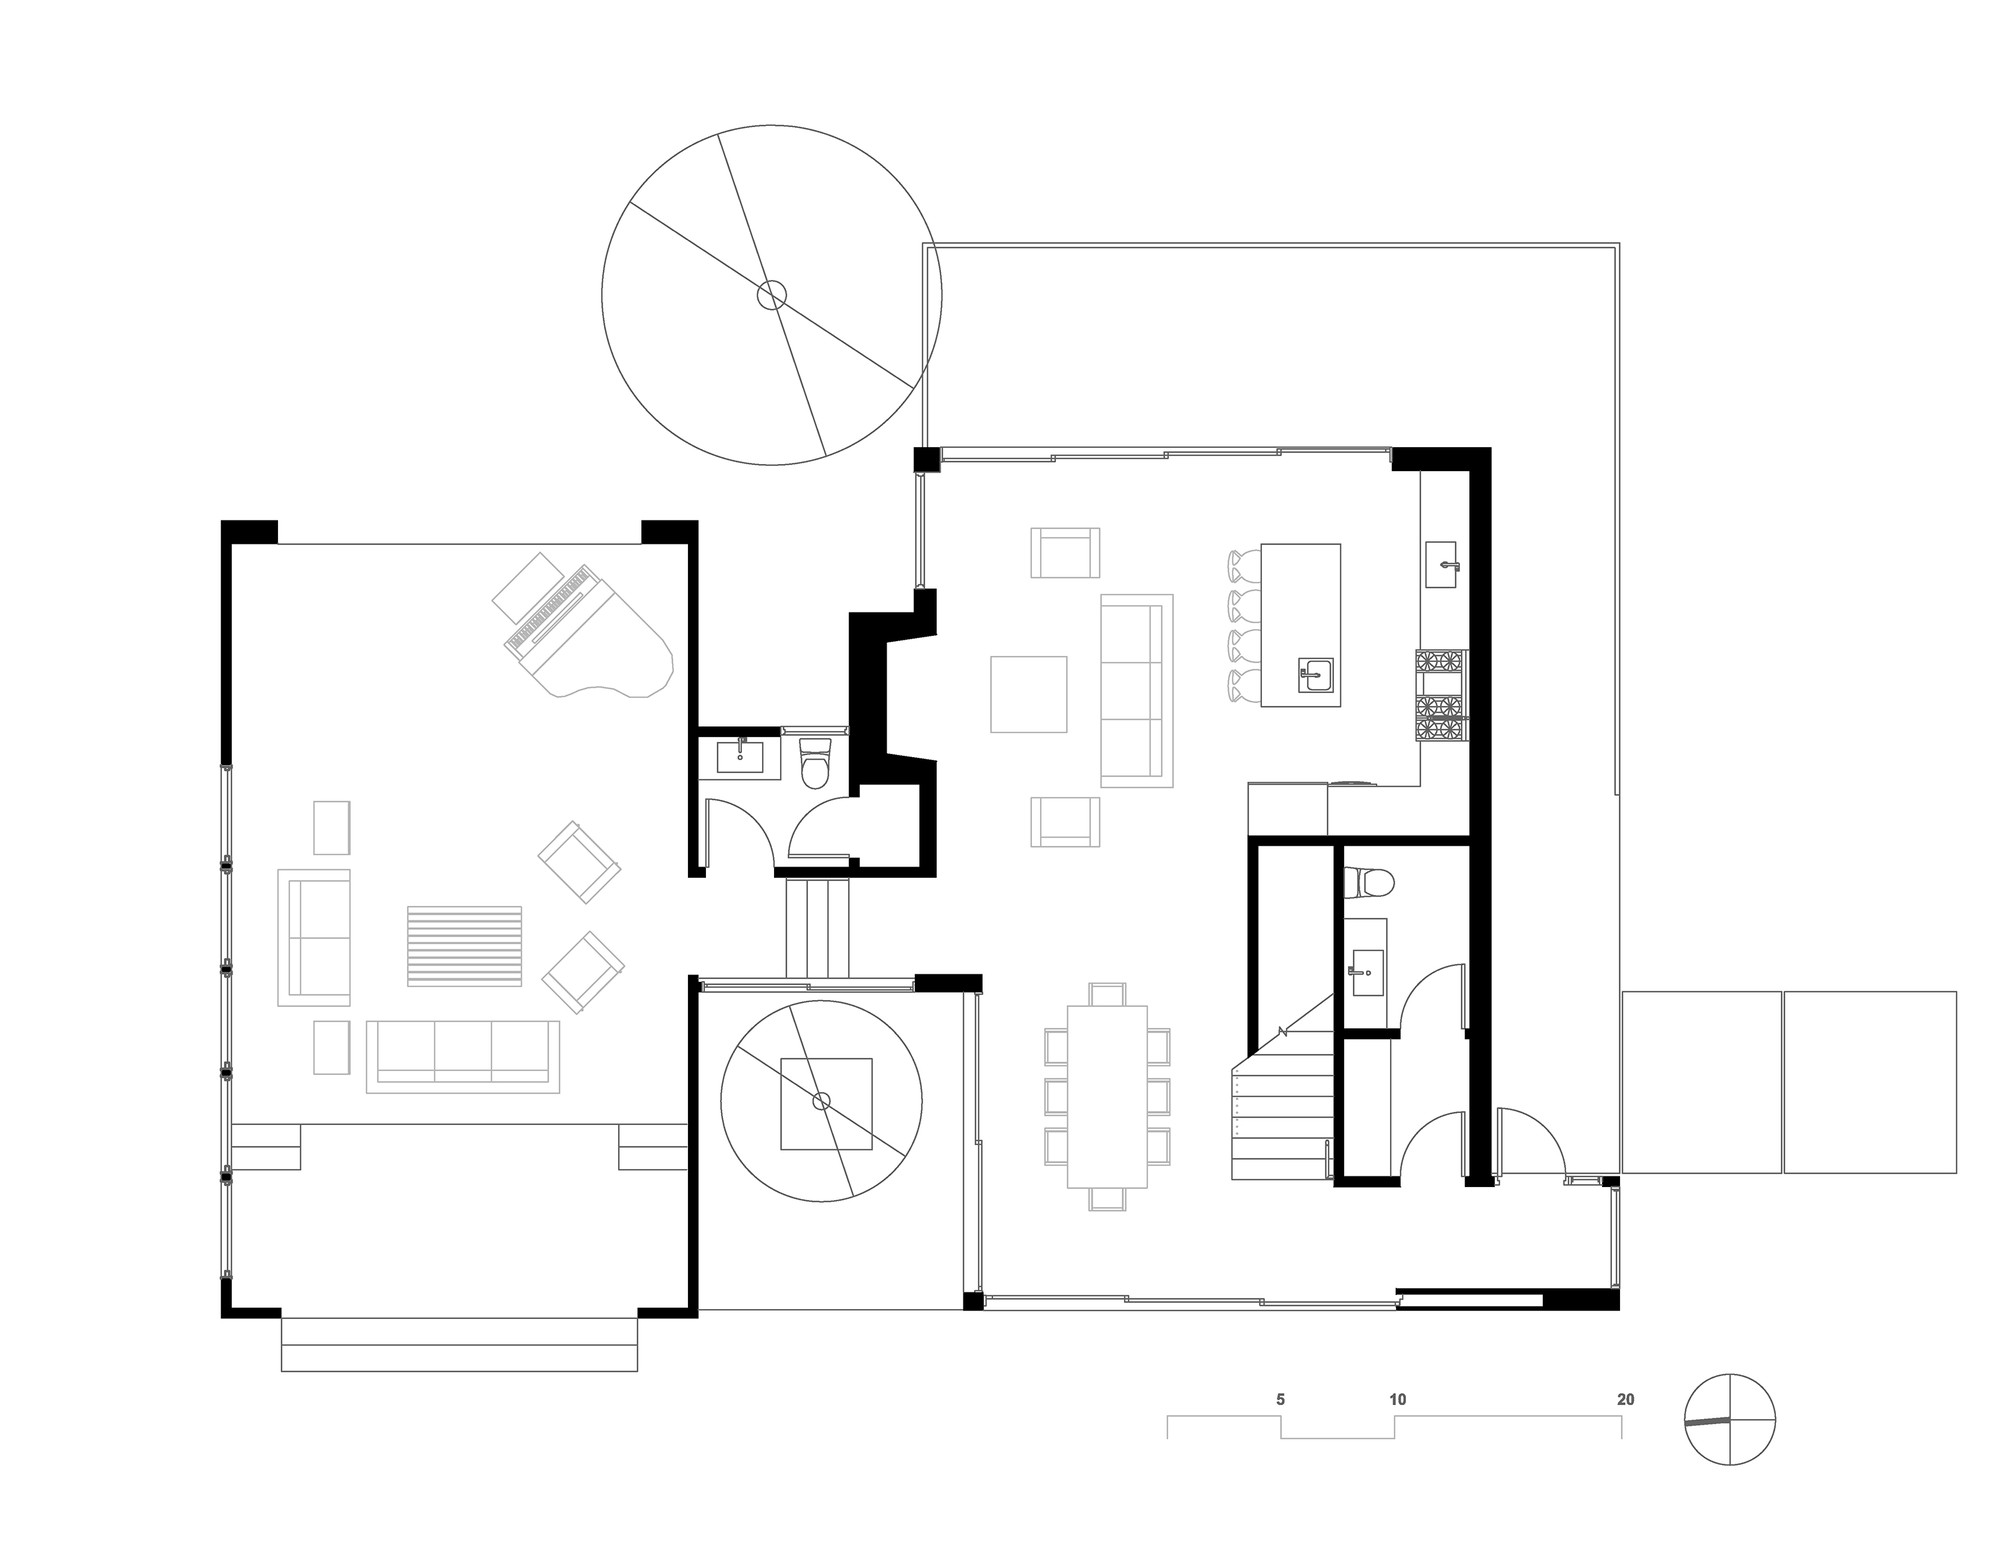 Oak pass guest walker workshop archdaily for Guest house floor plan